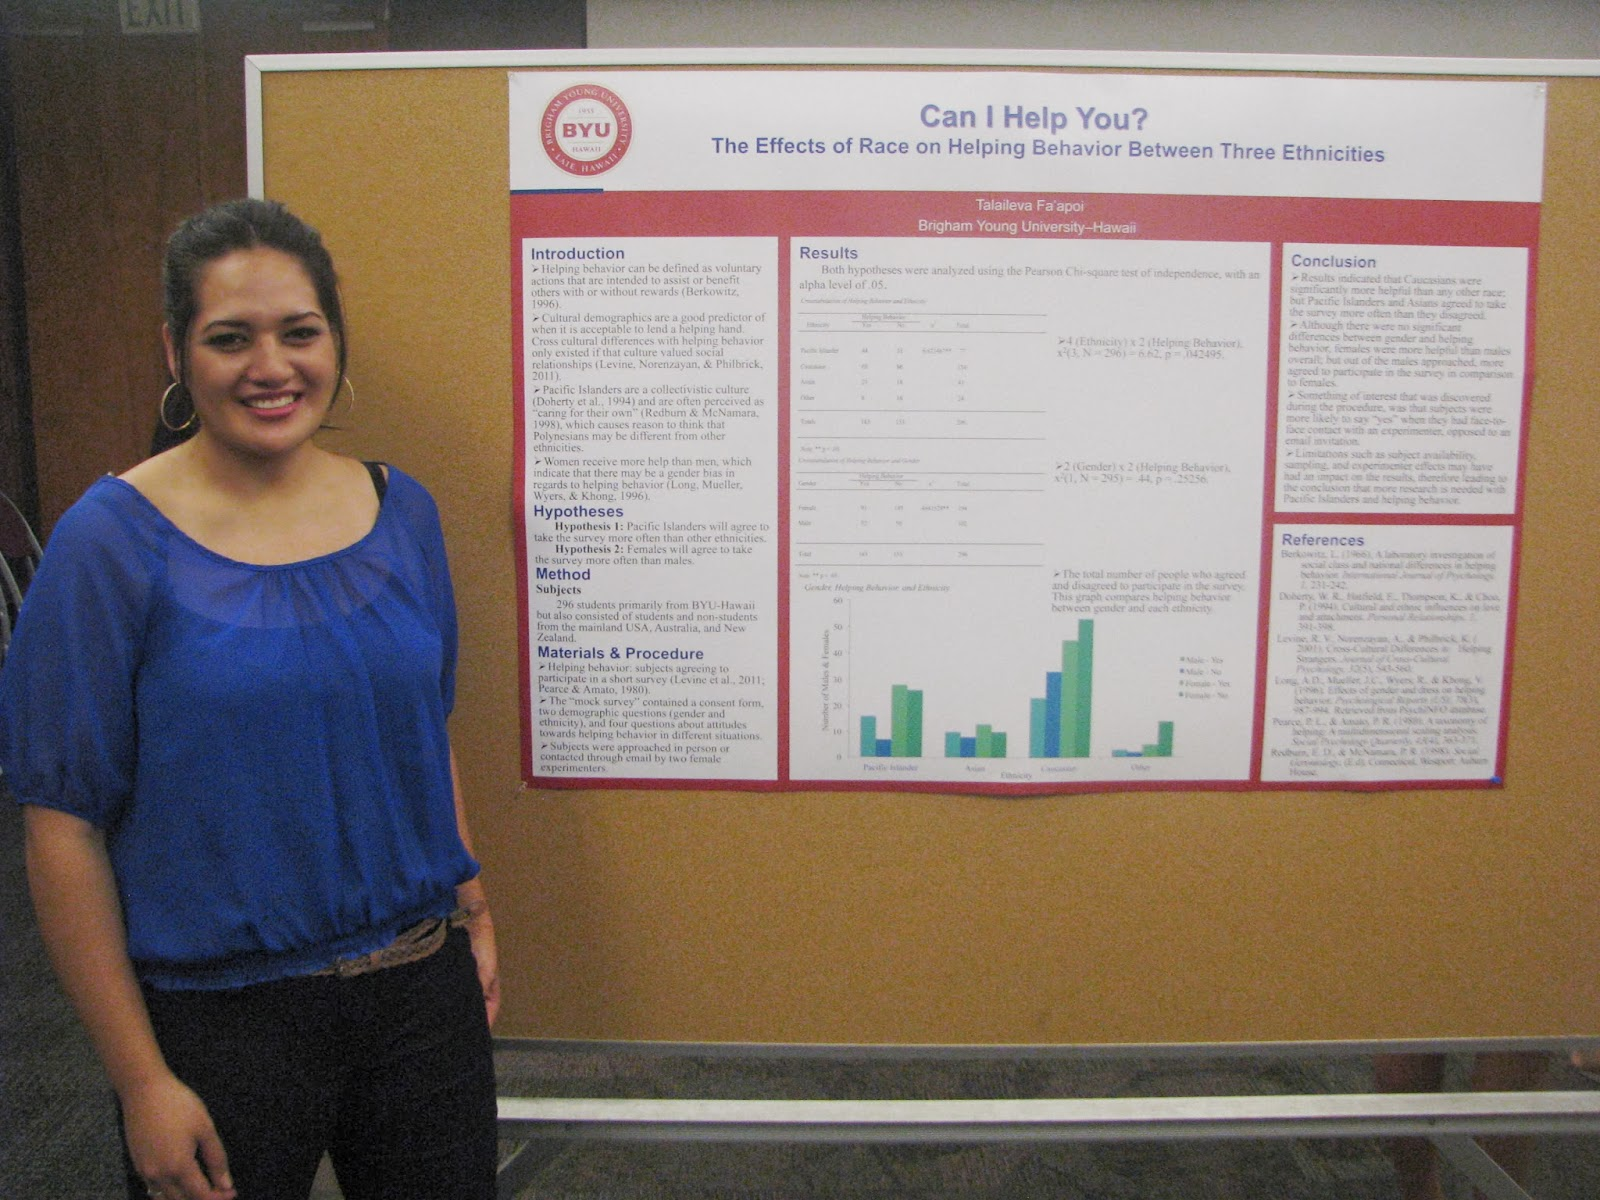 byuh psychology department student research presentations based on a sample size of 296 subjects this study examines the relationship between ethnicity gender and helping behavior